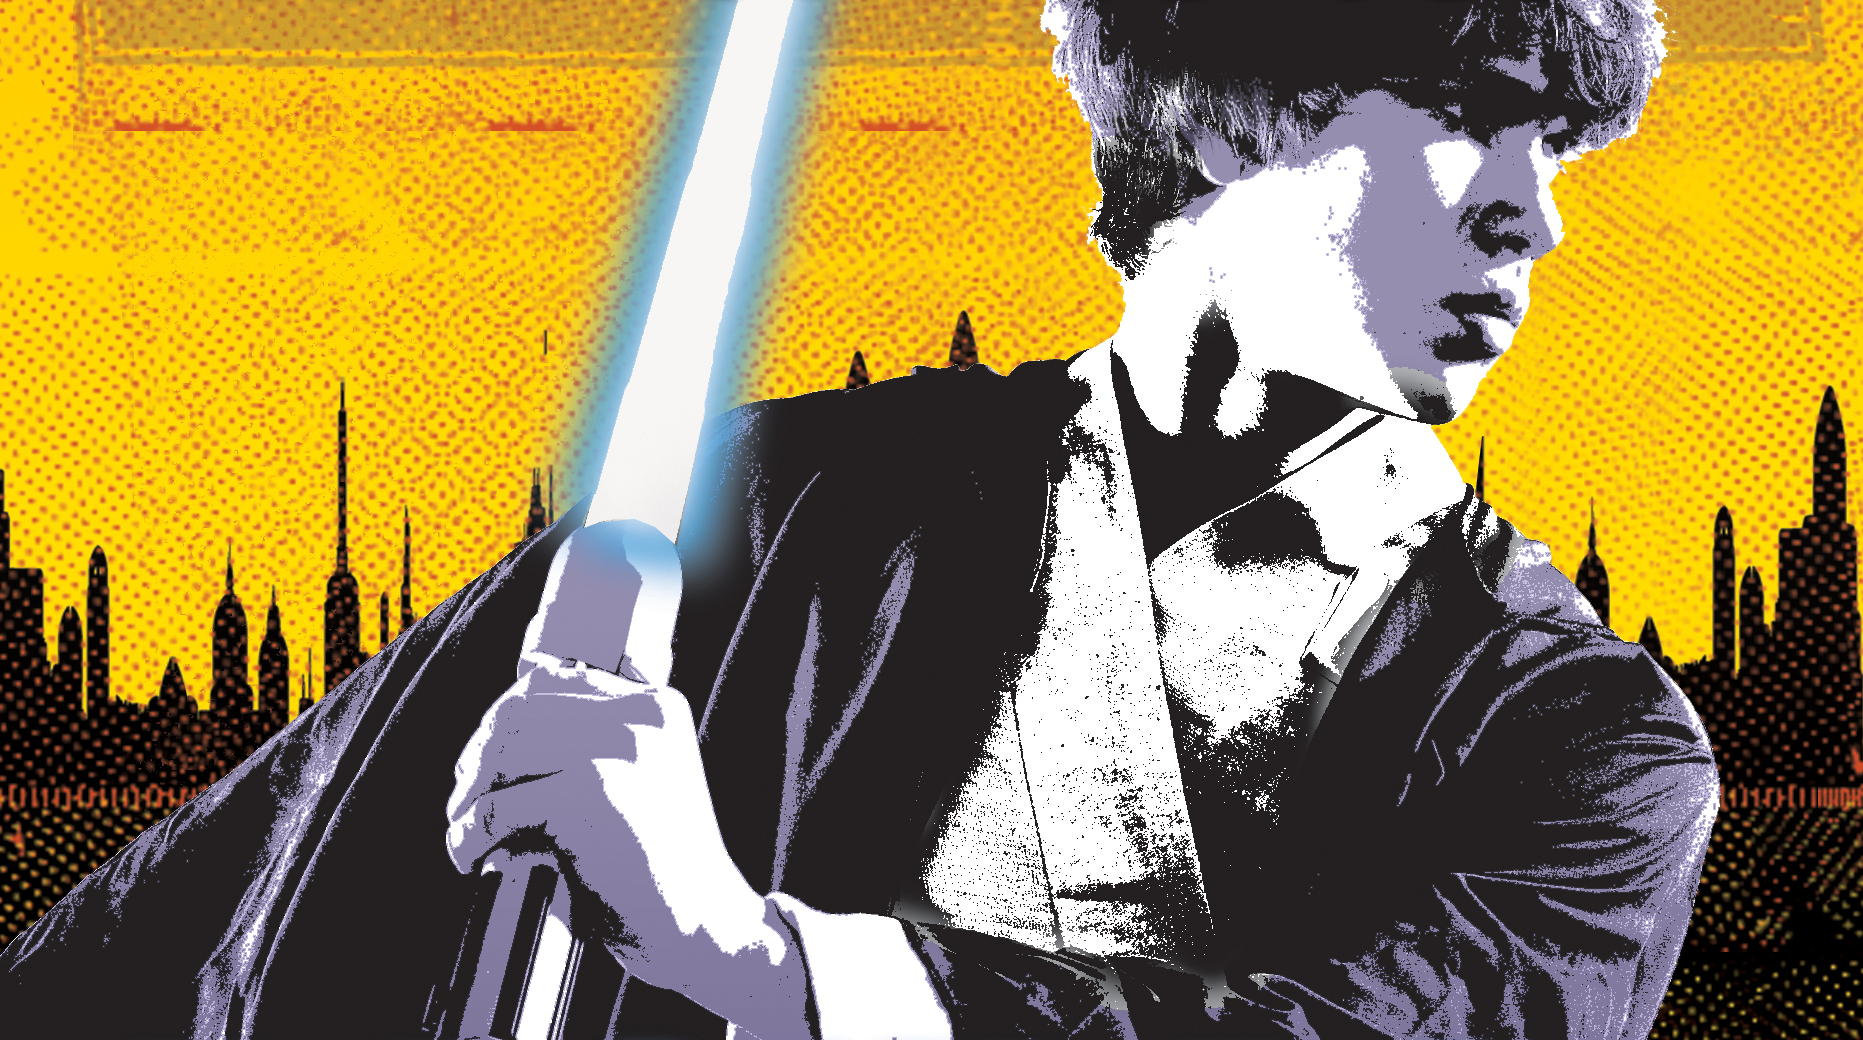 Skywalker/Solo kids are coming with Star Wars Episode VII ...